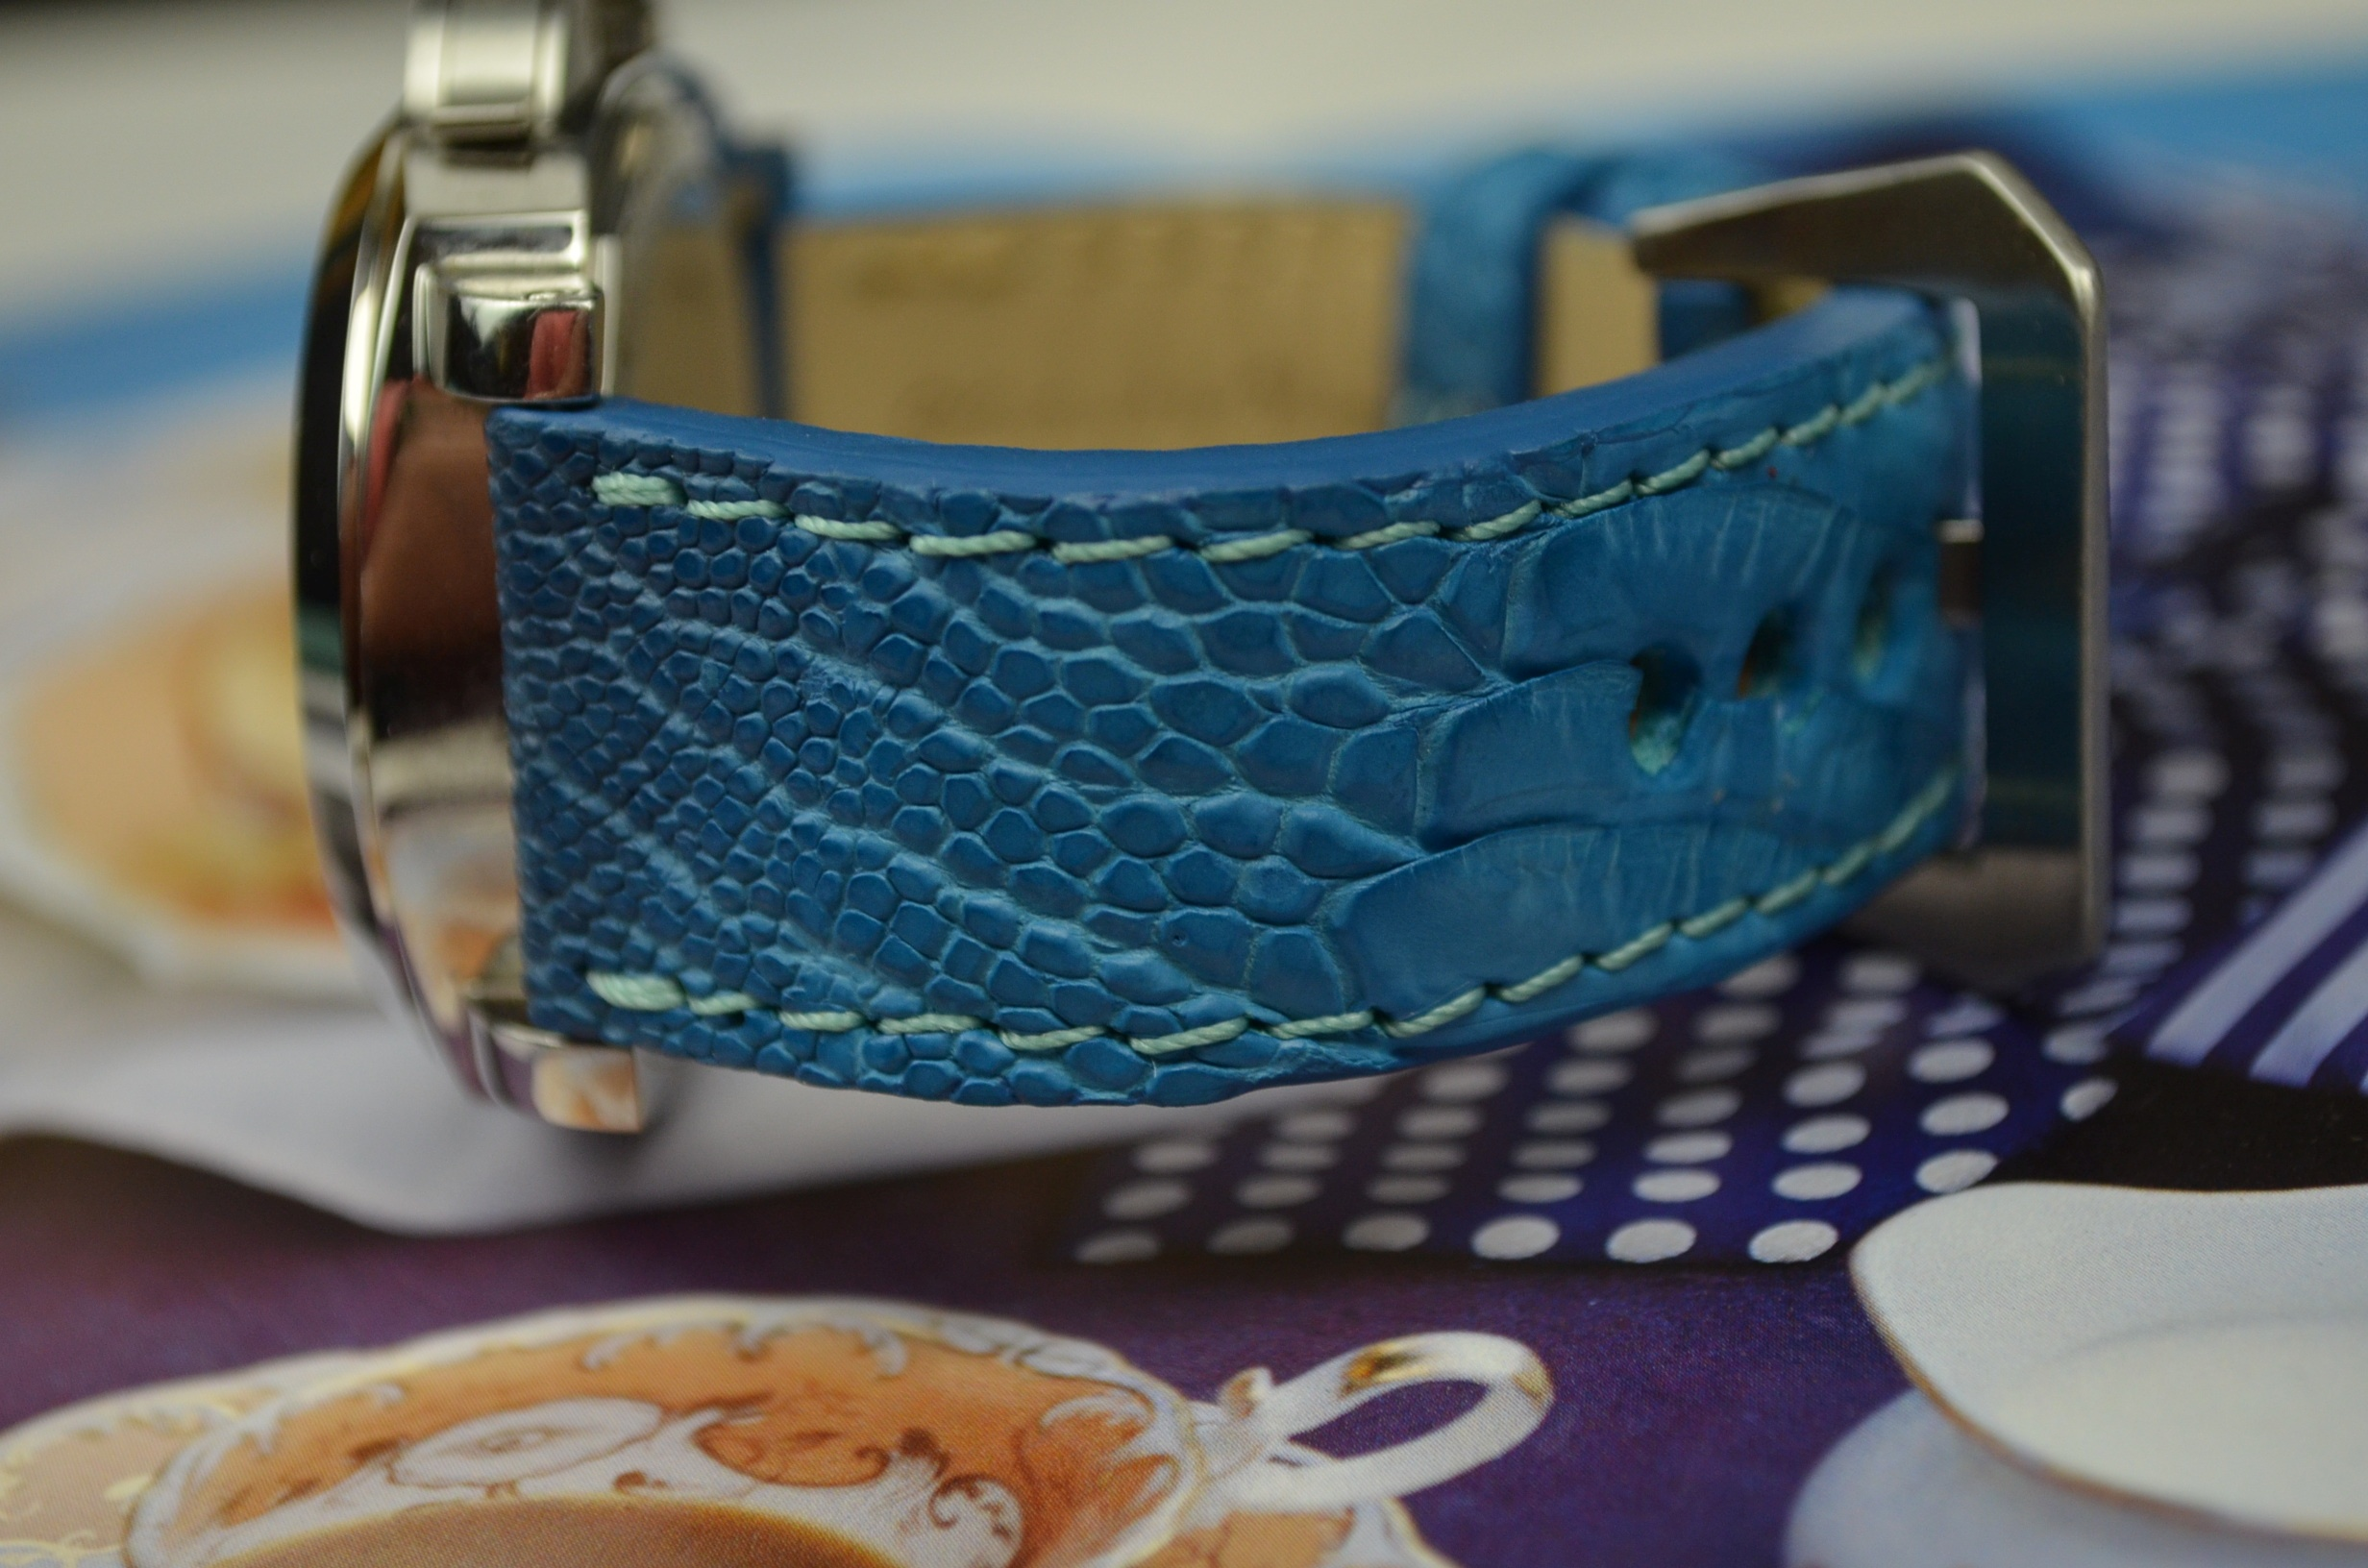 LIGHT BLUE MATTE is one of our hand crafted watch straps. Available in light blue fantasy color, 4 - 4.5 mm thick.